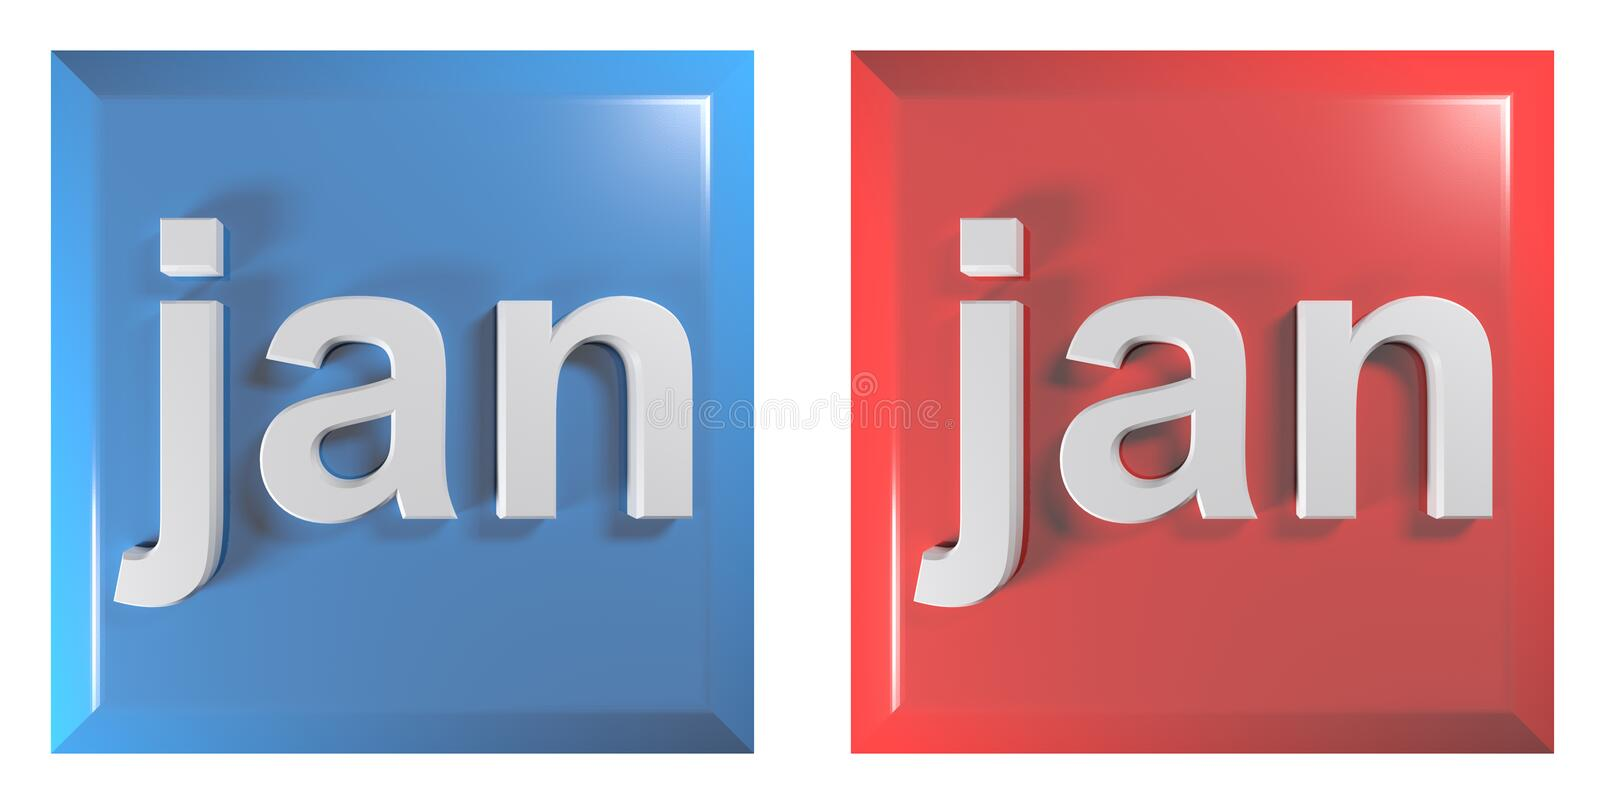 Blue and red couple of square push buttons JANUARY - 3D rendering illustration. A couple of square push buttons, blue and red, isolated on white background, with vector illustration